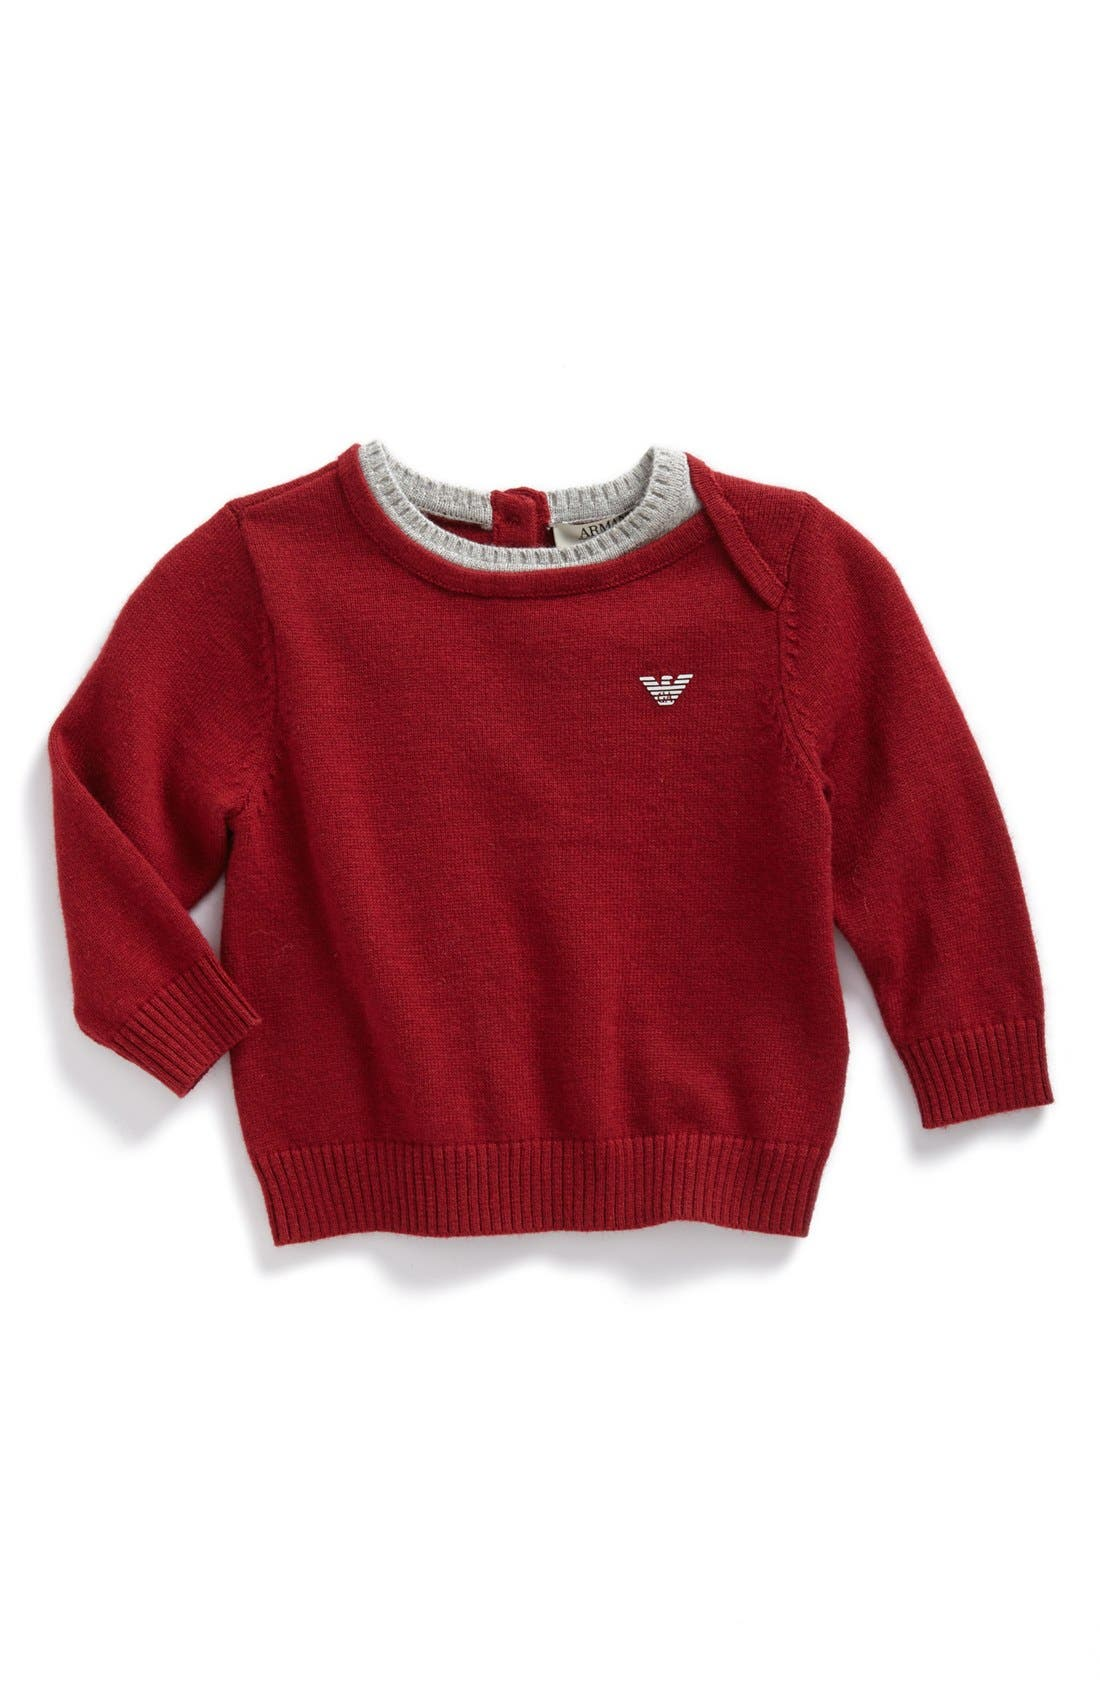 Alternate Image 1 Selected - Armani Junior Knit Sweater (Baby Boys)